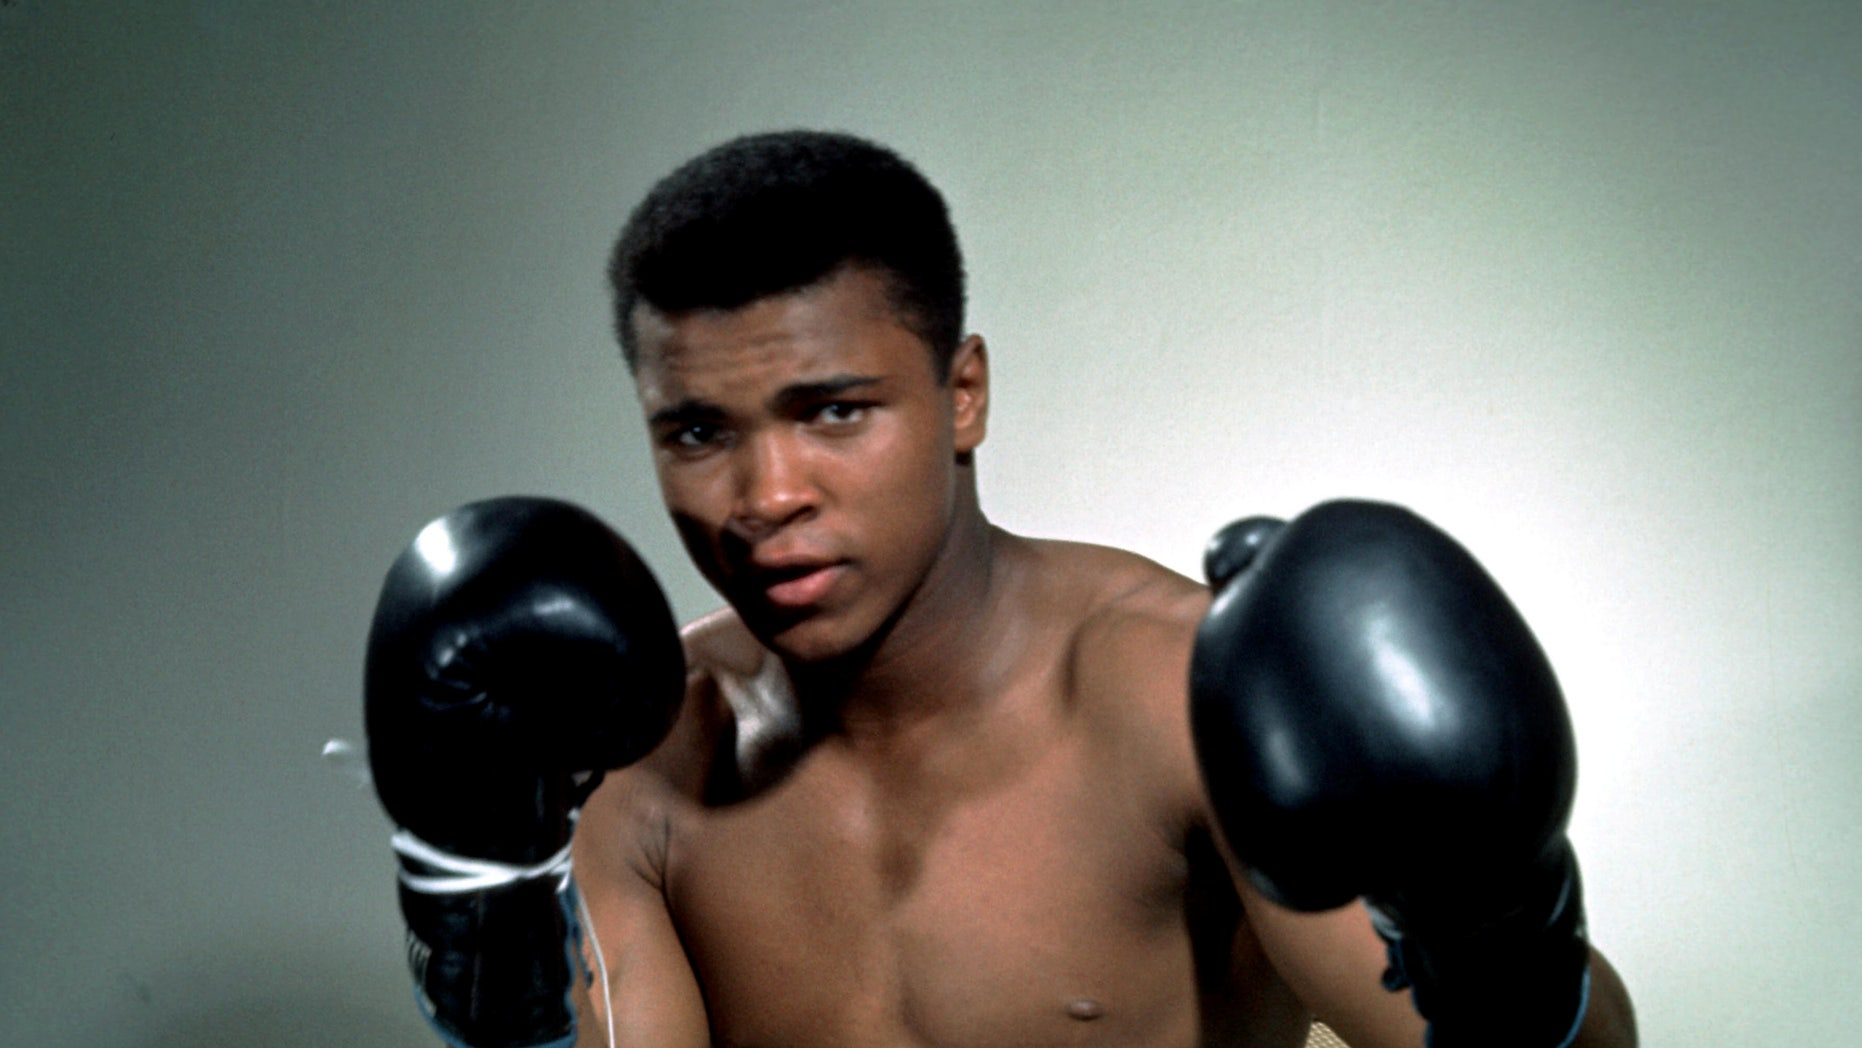 Muhammad Ali poses with gloves in this undated portrait.Mandatory Credit: Action Images / Sporting Pictures/File Photo EDITORIAL USE ONLY. - RTSFZ2A